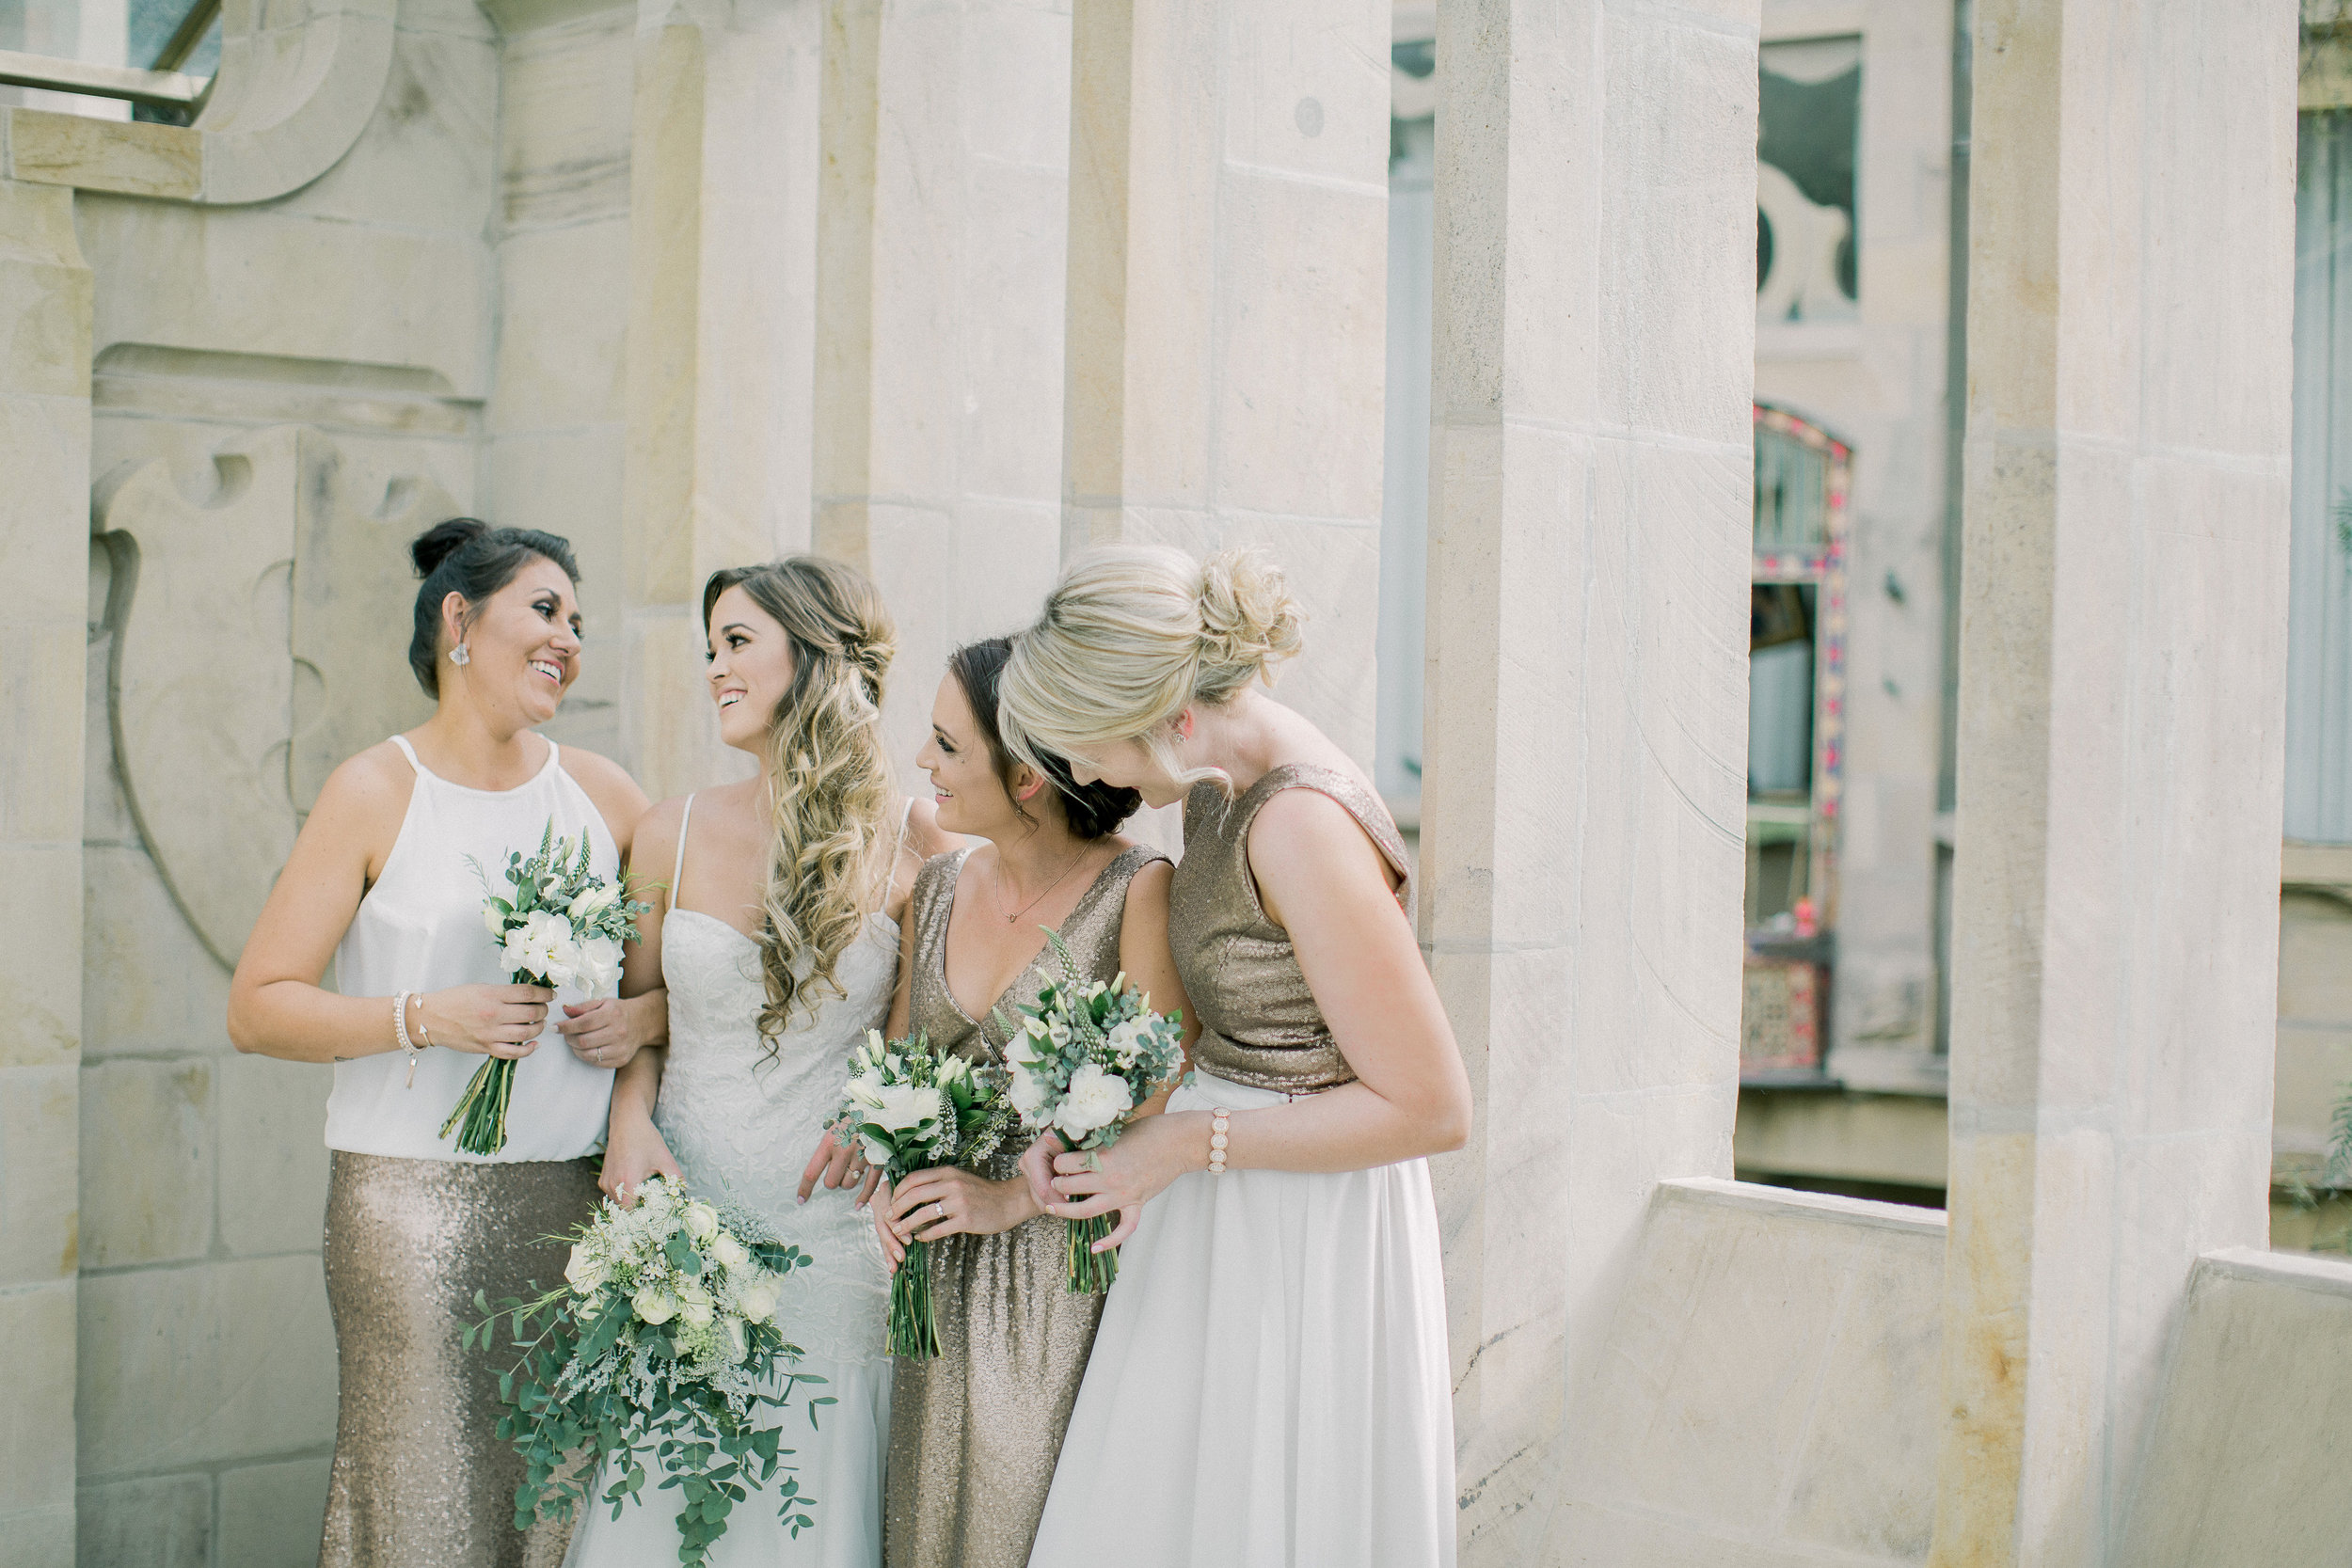 South africa wedding photographer clareece smit photography36.jpg